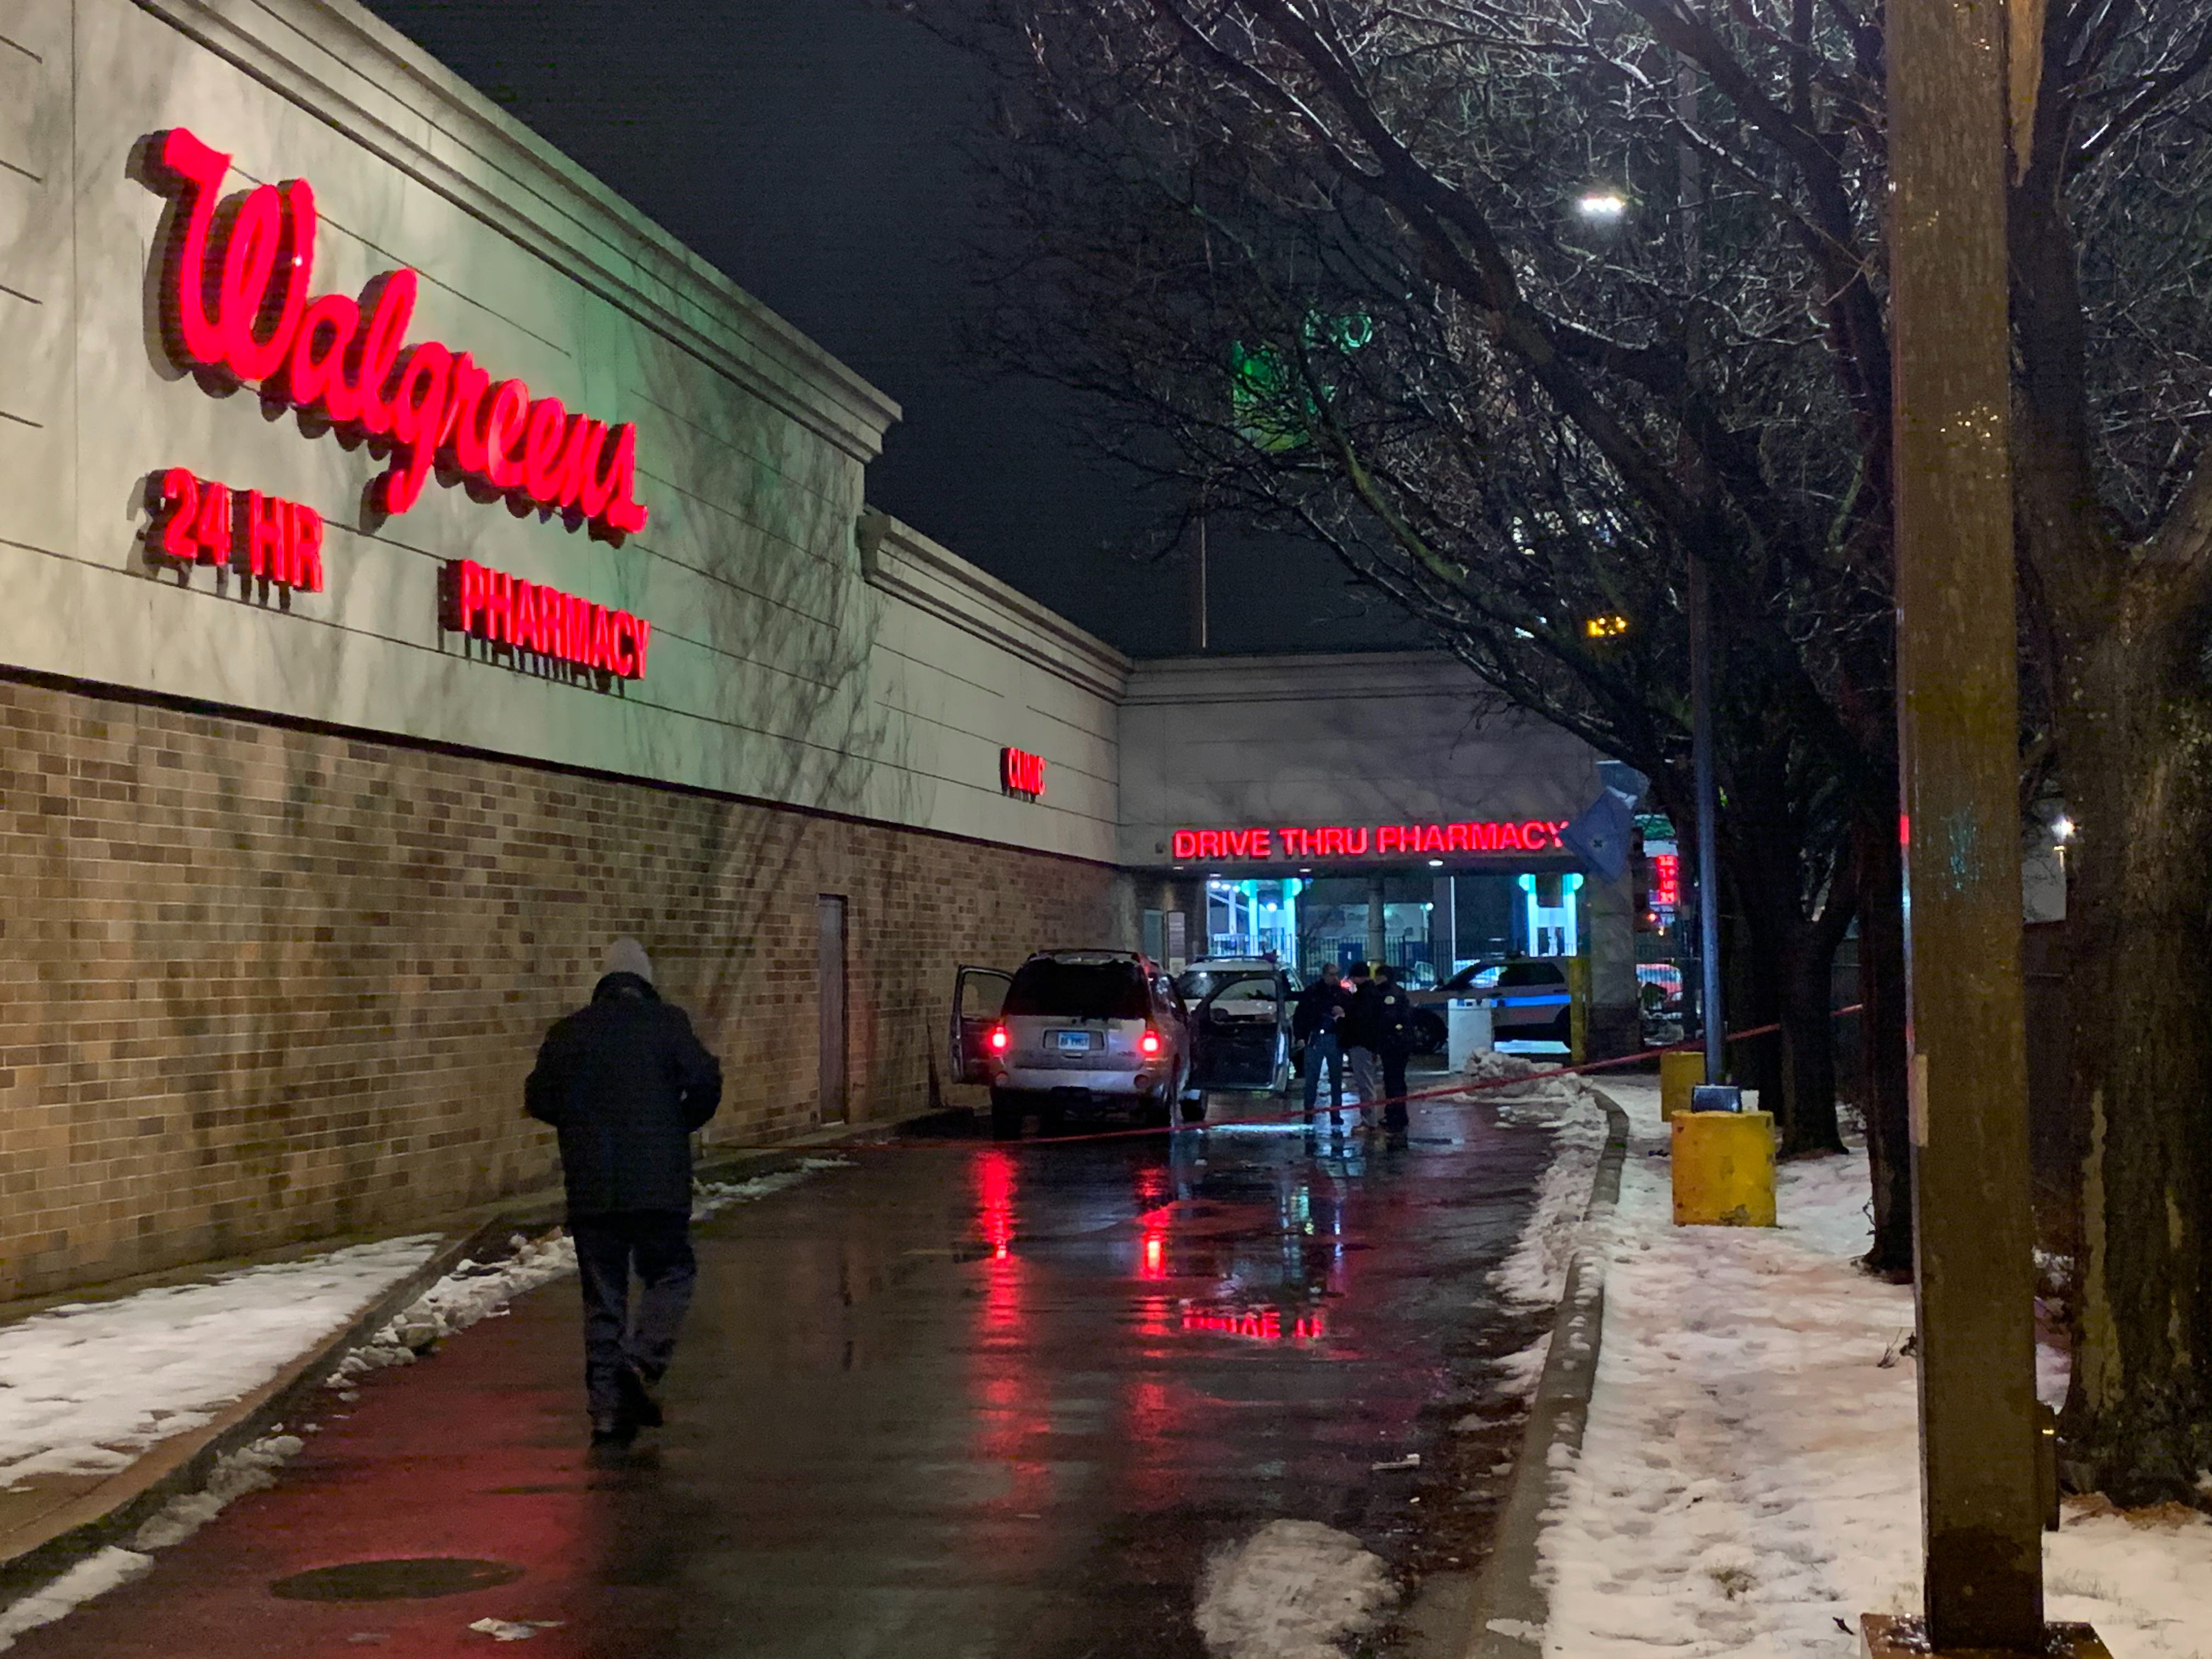 A man was killed in a shooting at a Walgreens